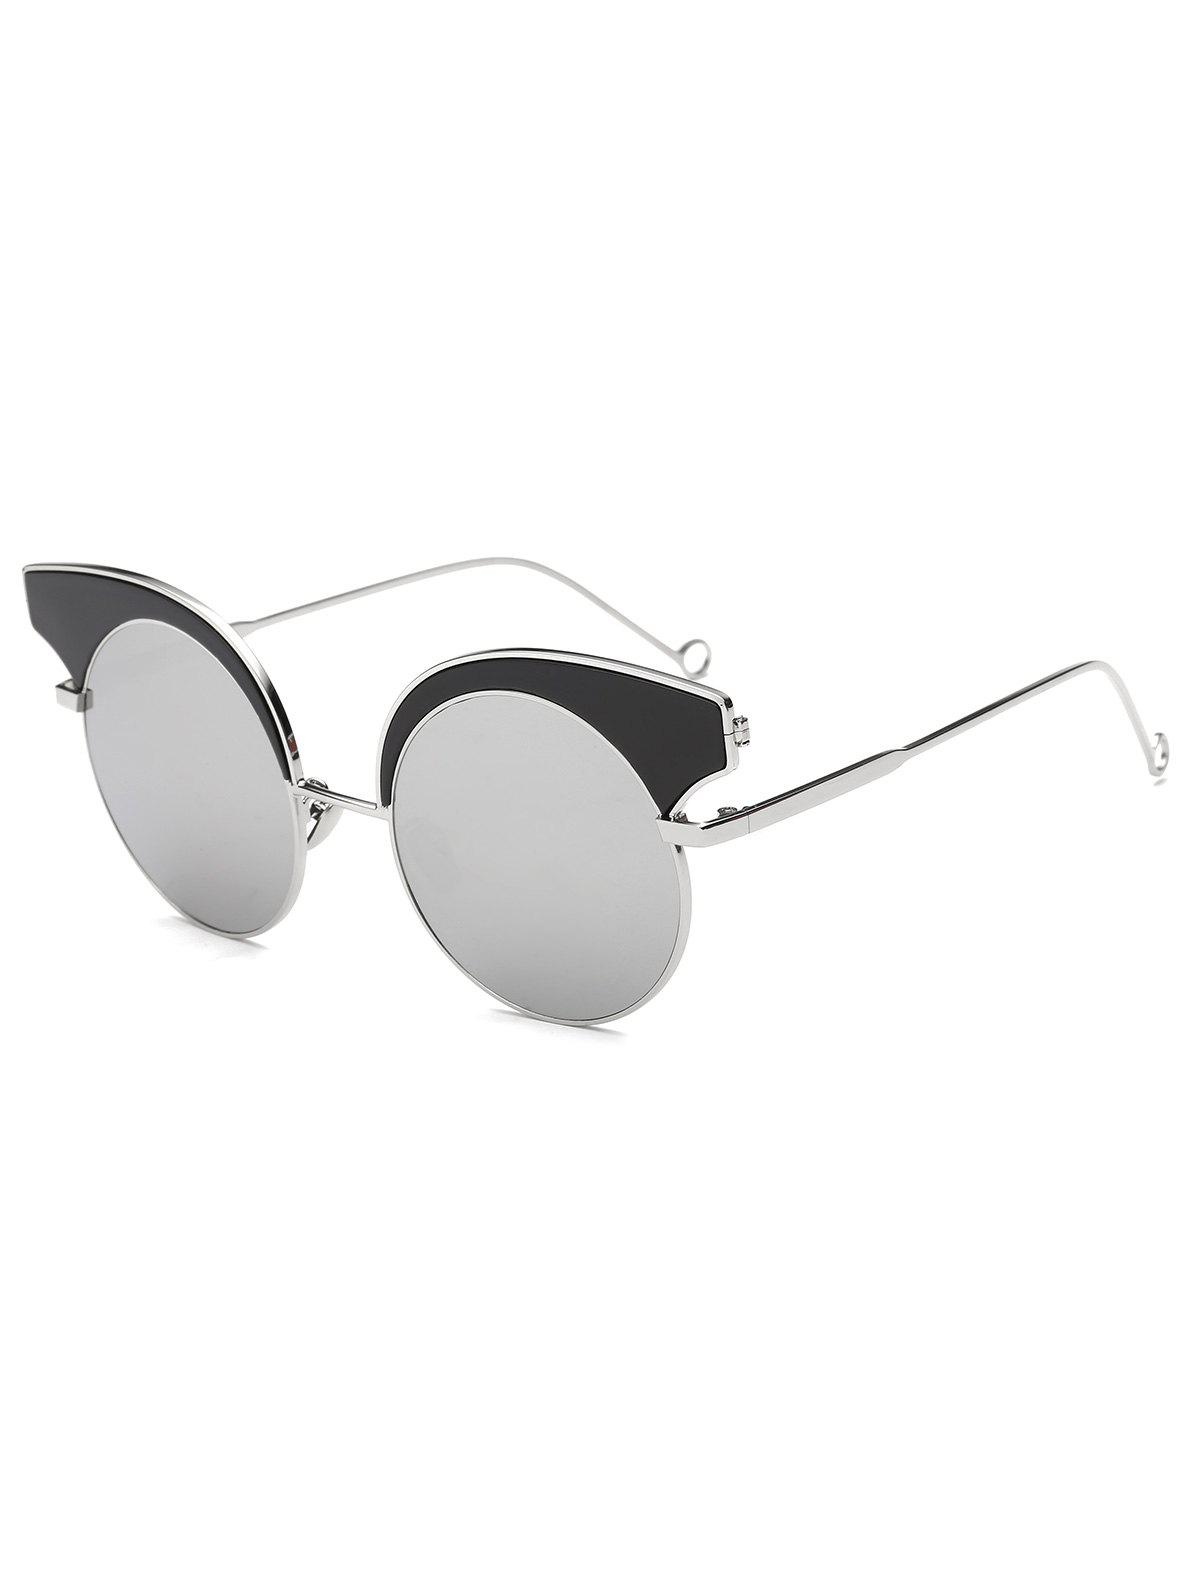 02a76cf33aa Trendy Cool Round Lens Butterfly Mirror Sunglasses